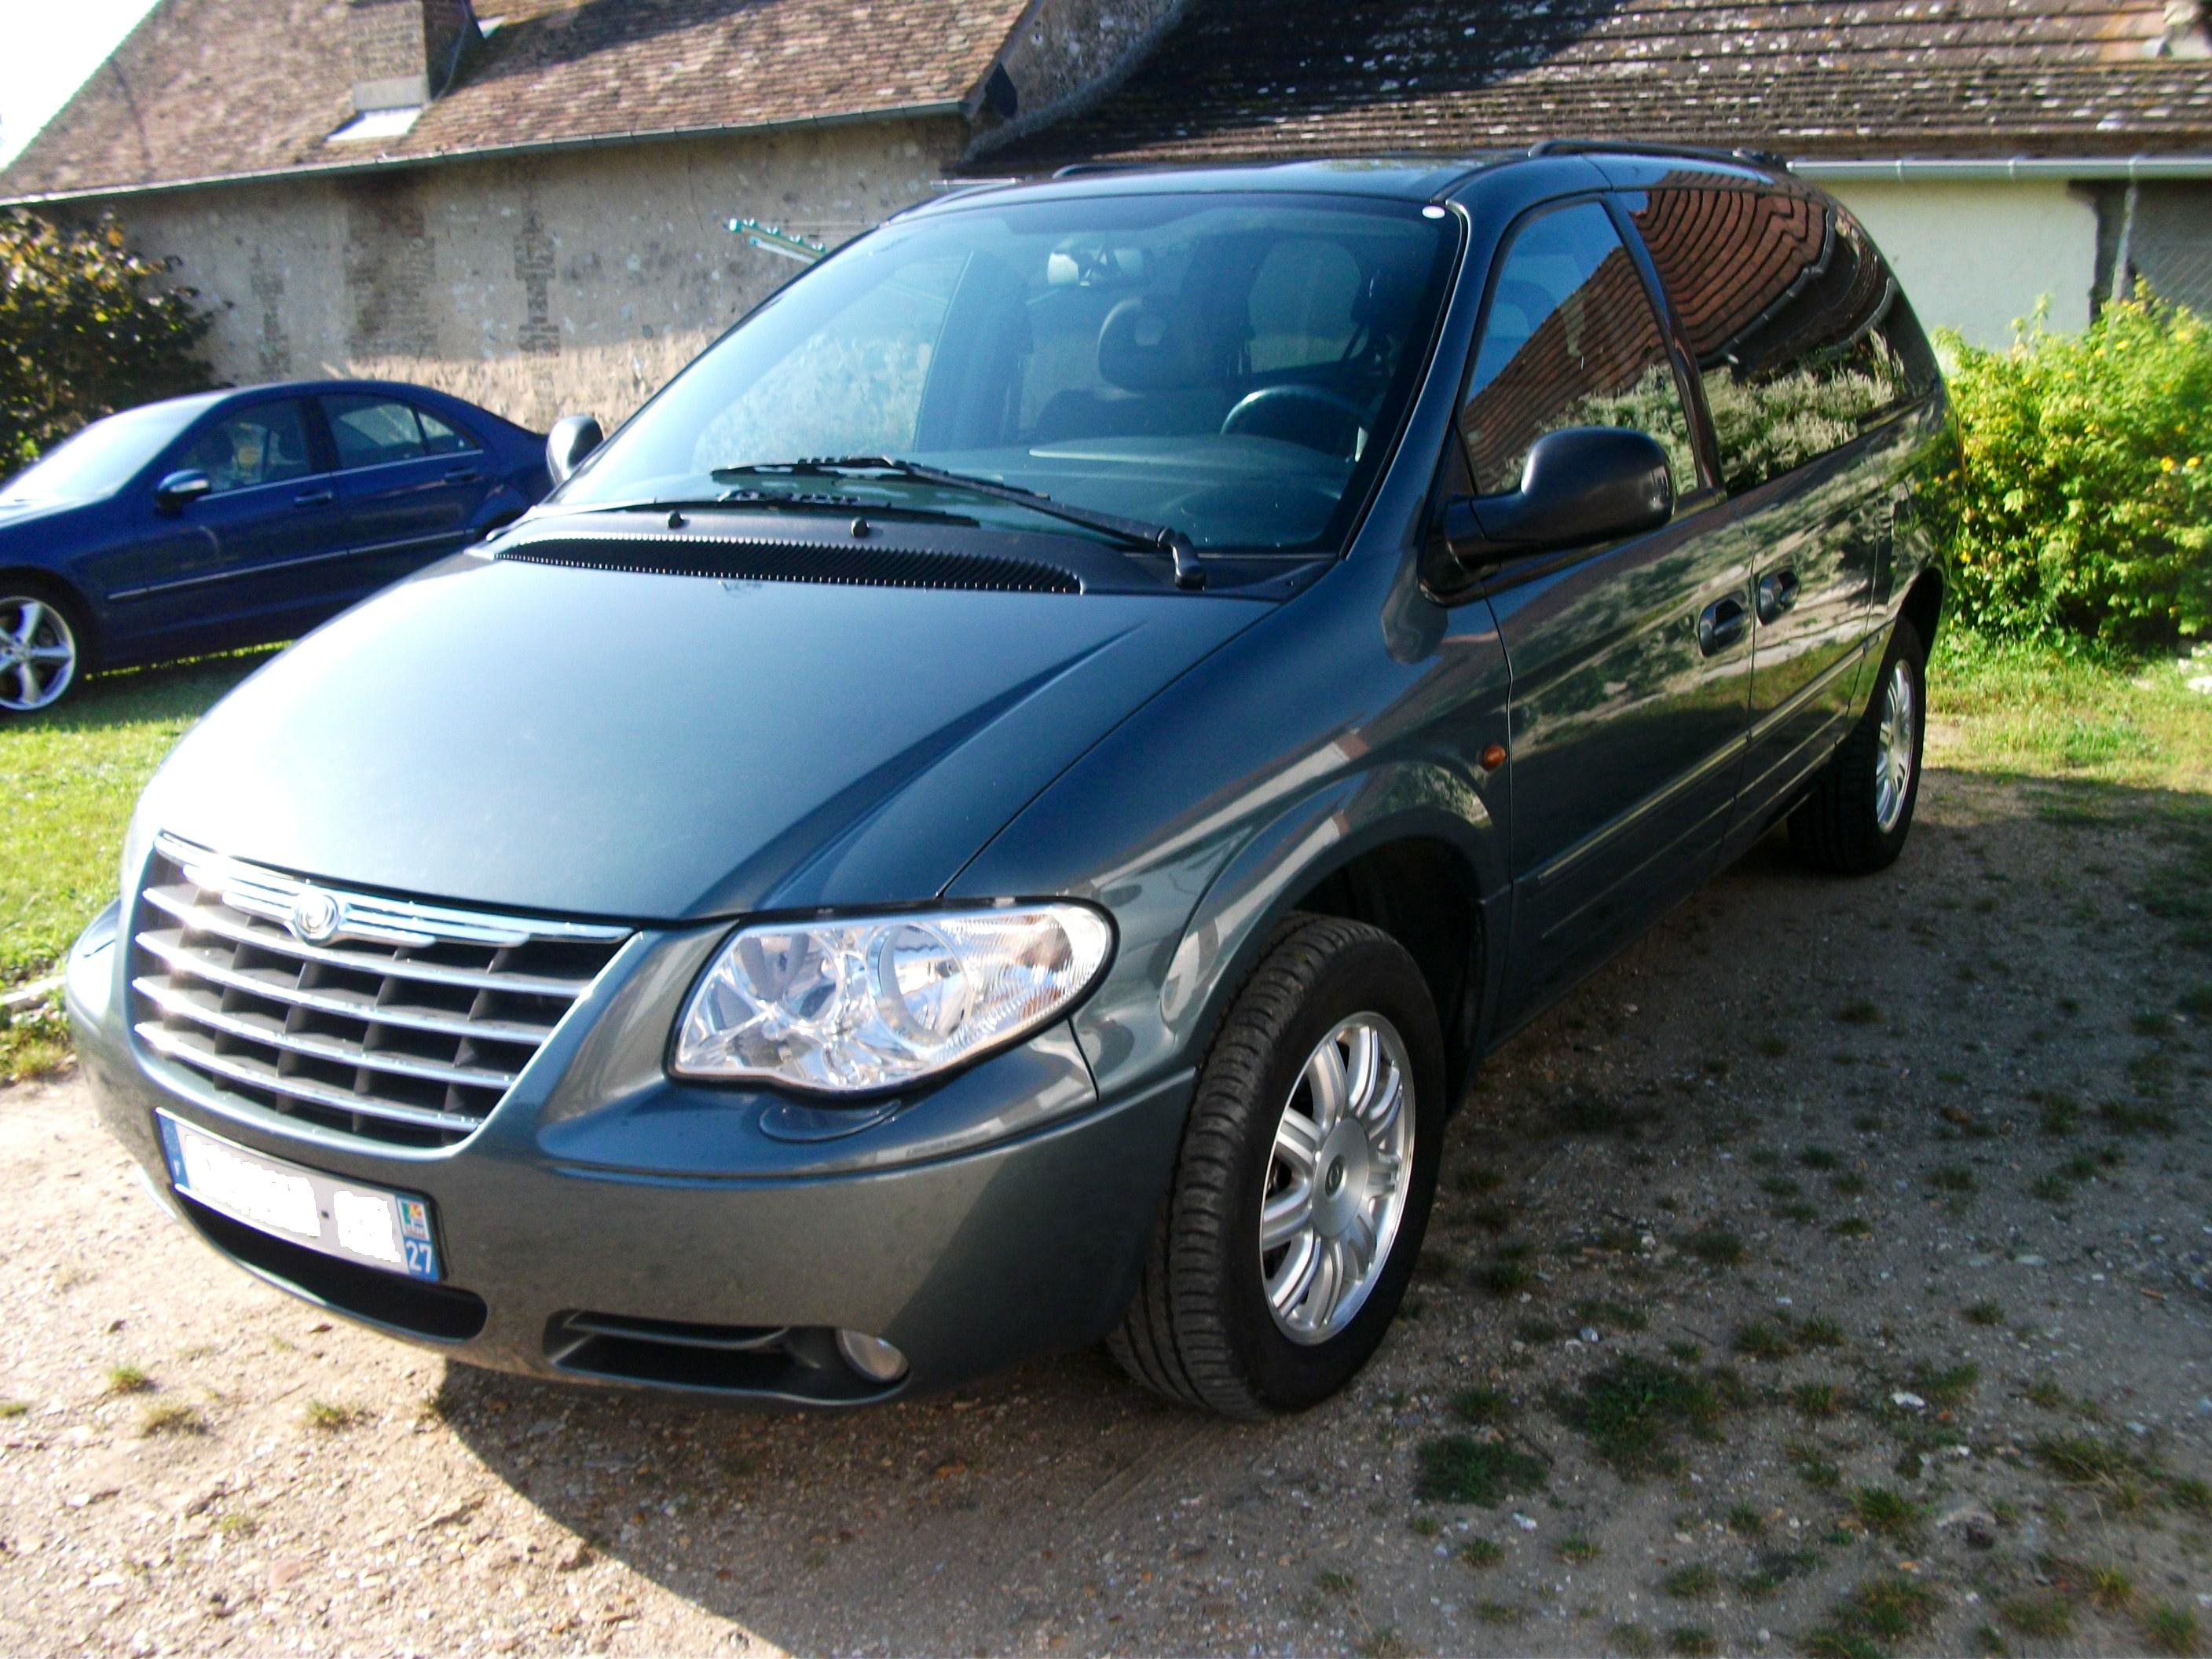 Chrysler Grand Voyager 7 vrai places et grand coffre, 2008, Diesel, automatique, 7 places